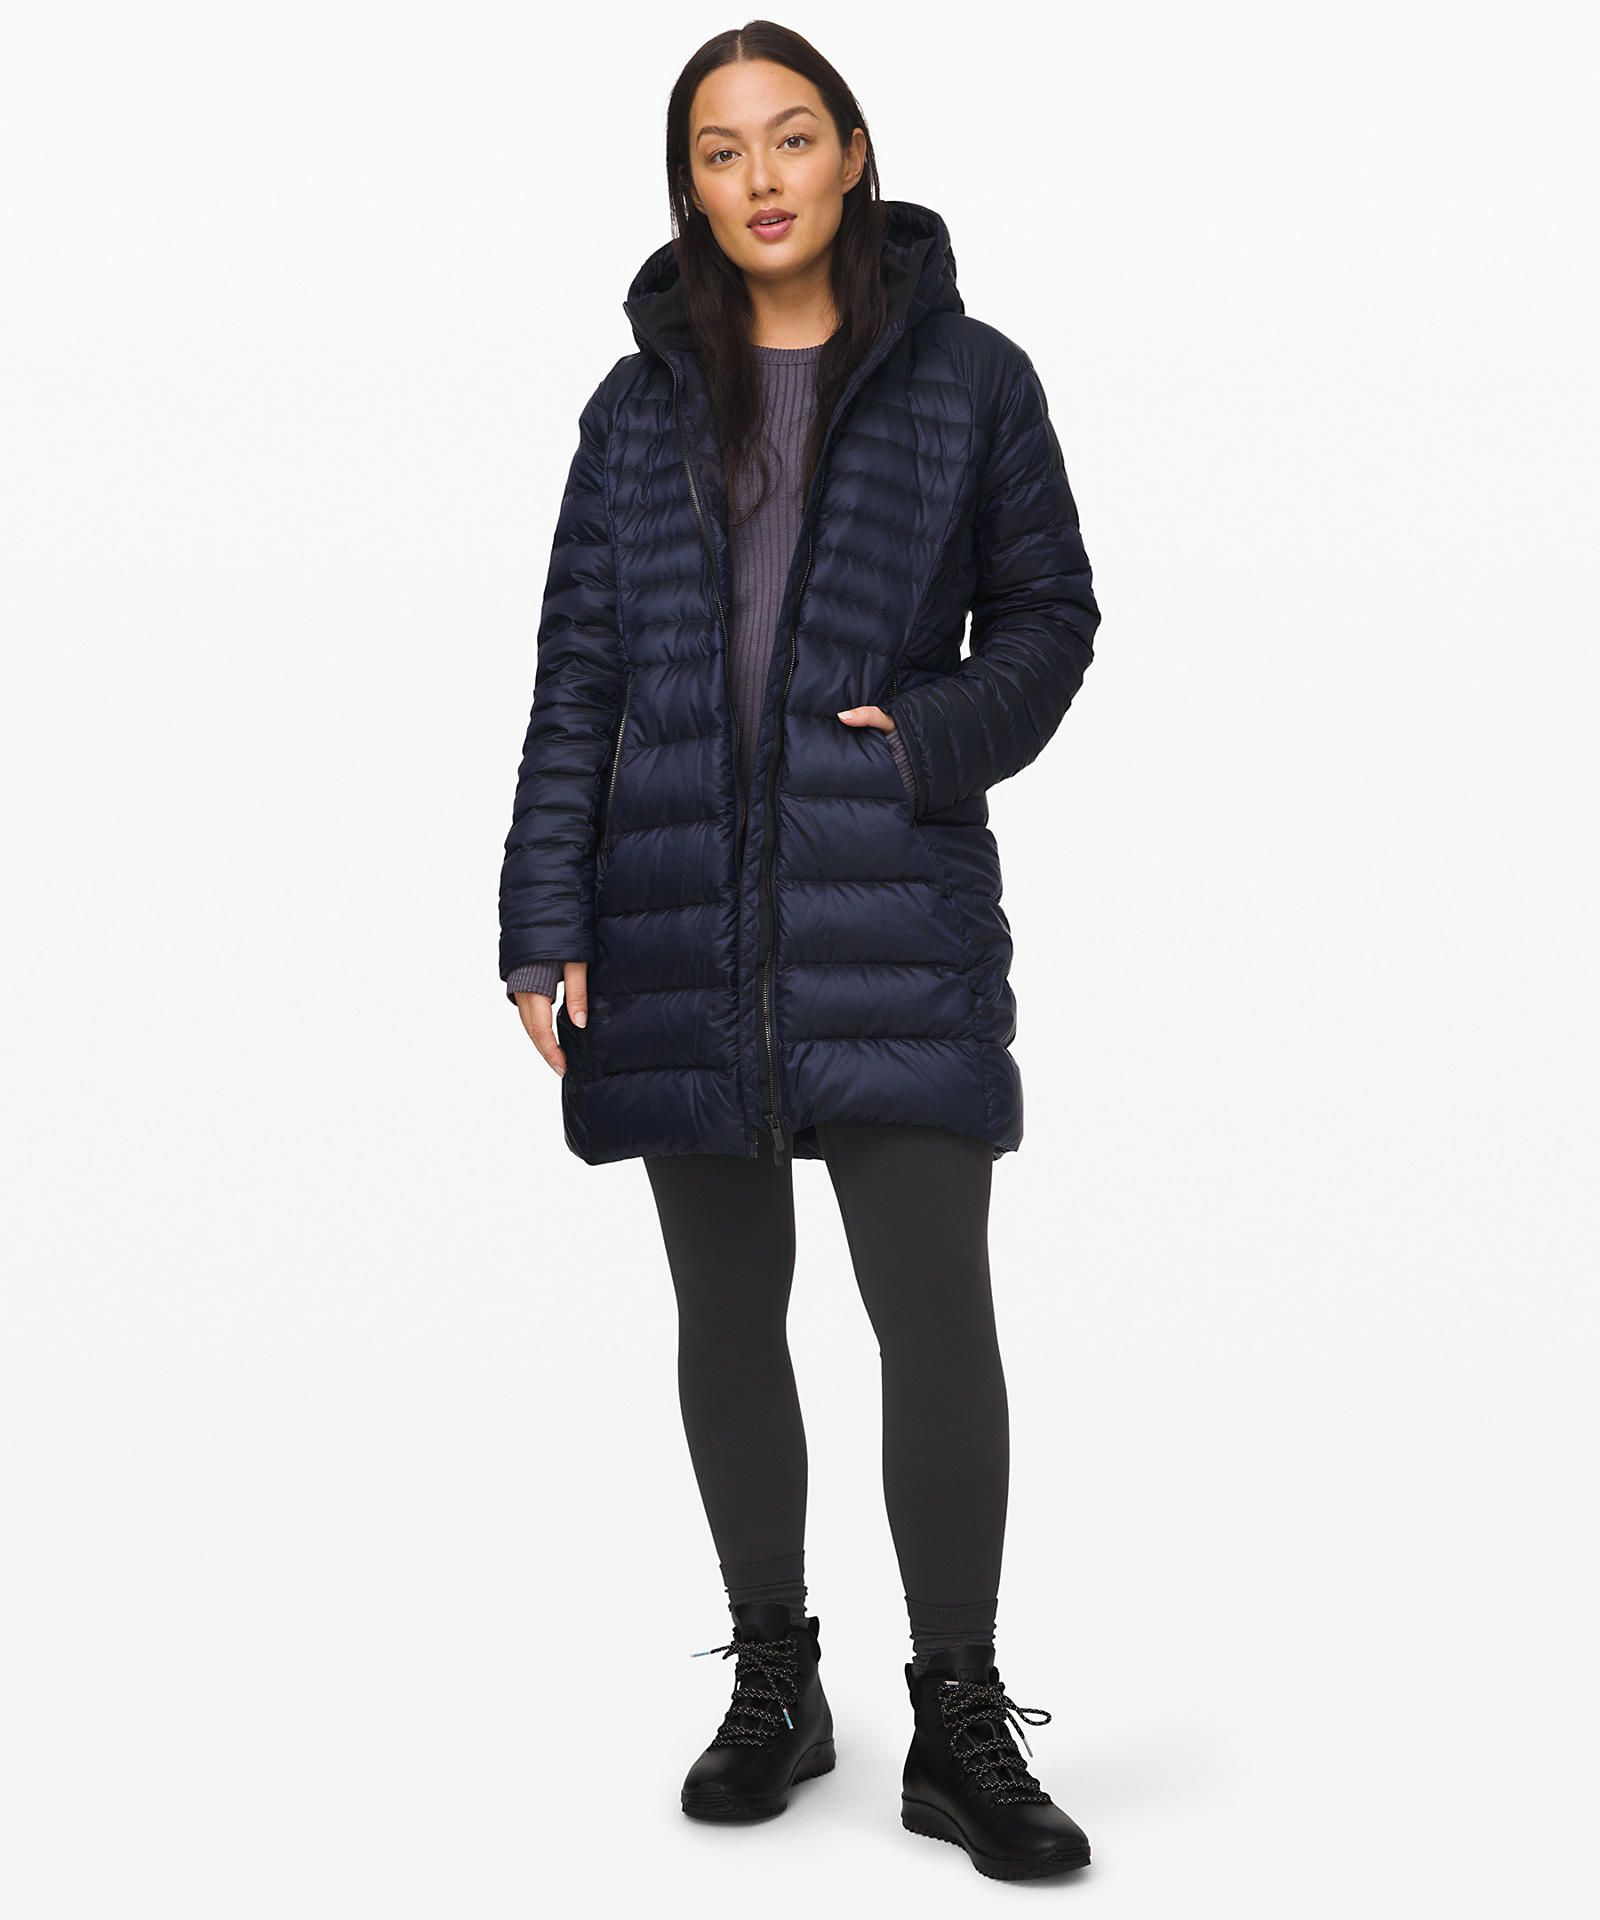 Brave The Cold Jacket Women S Jackets Outerwear Lululemon Athletica Cold Jacket Jackets For Women Jackets [ 1920 x 1600 Pixel ]